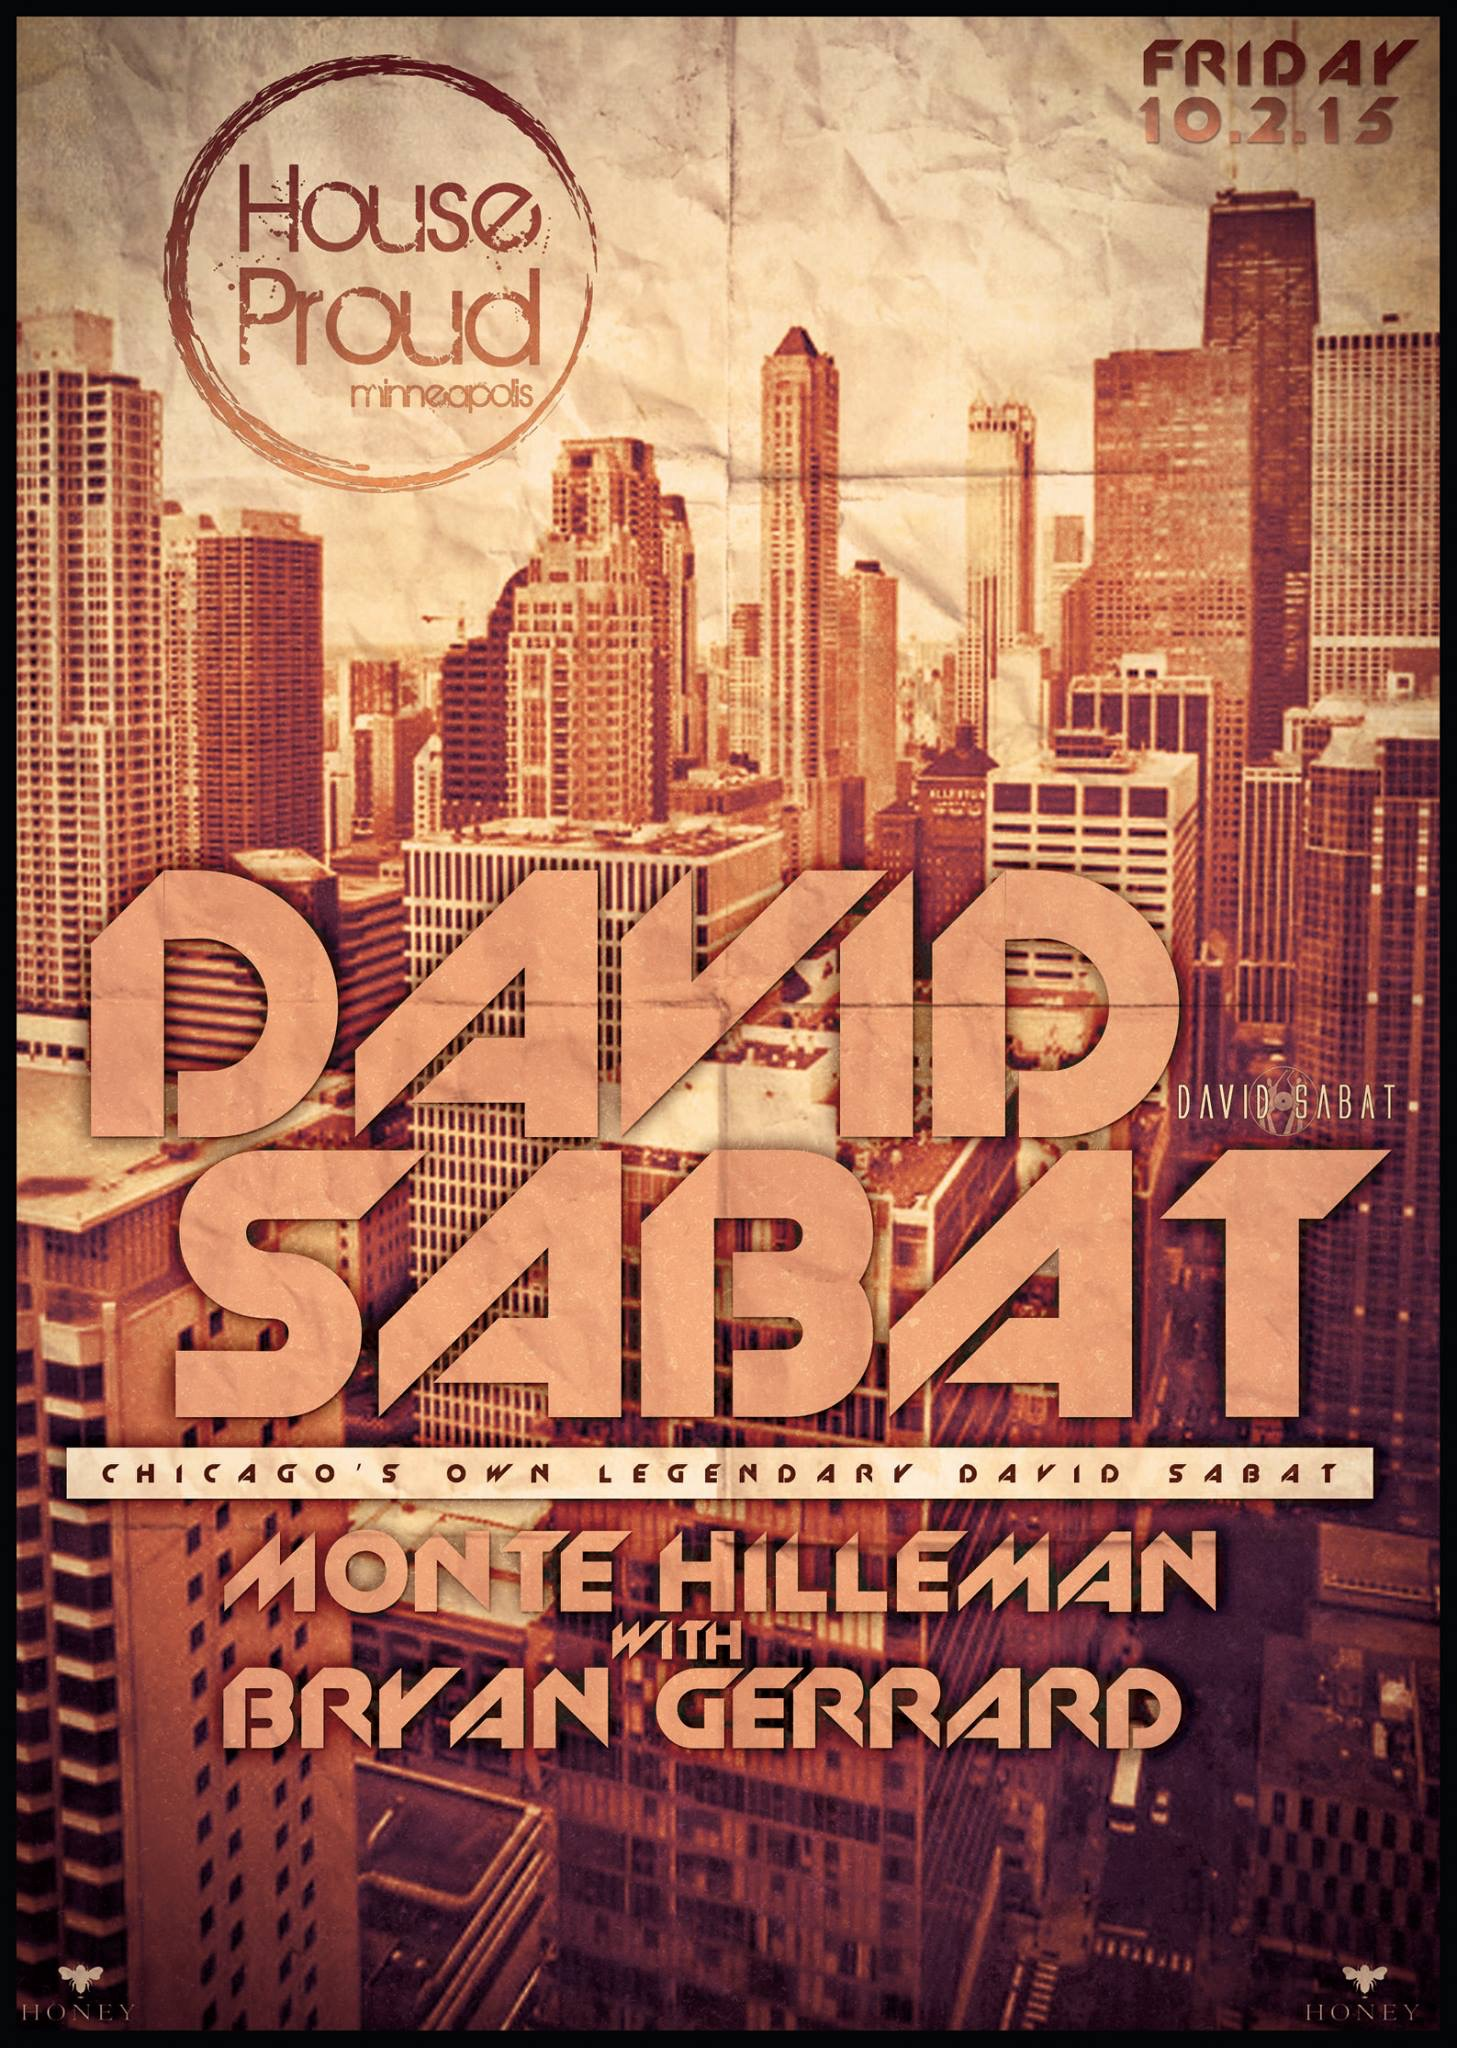 OCT 2 – HOUSEPROUD @ HONEY – DAVID SABAT / MONTE HILLEMAN / MONTE HILLEMAN